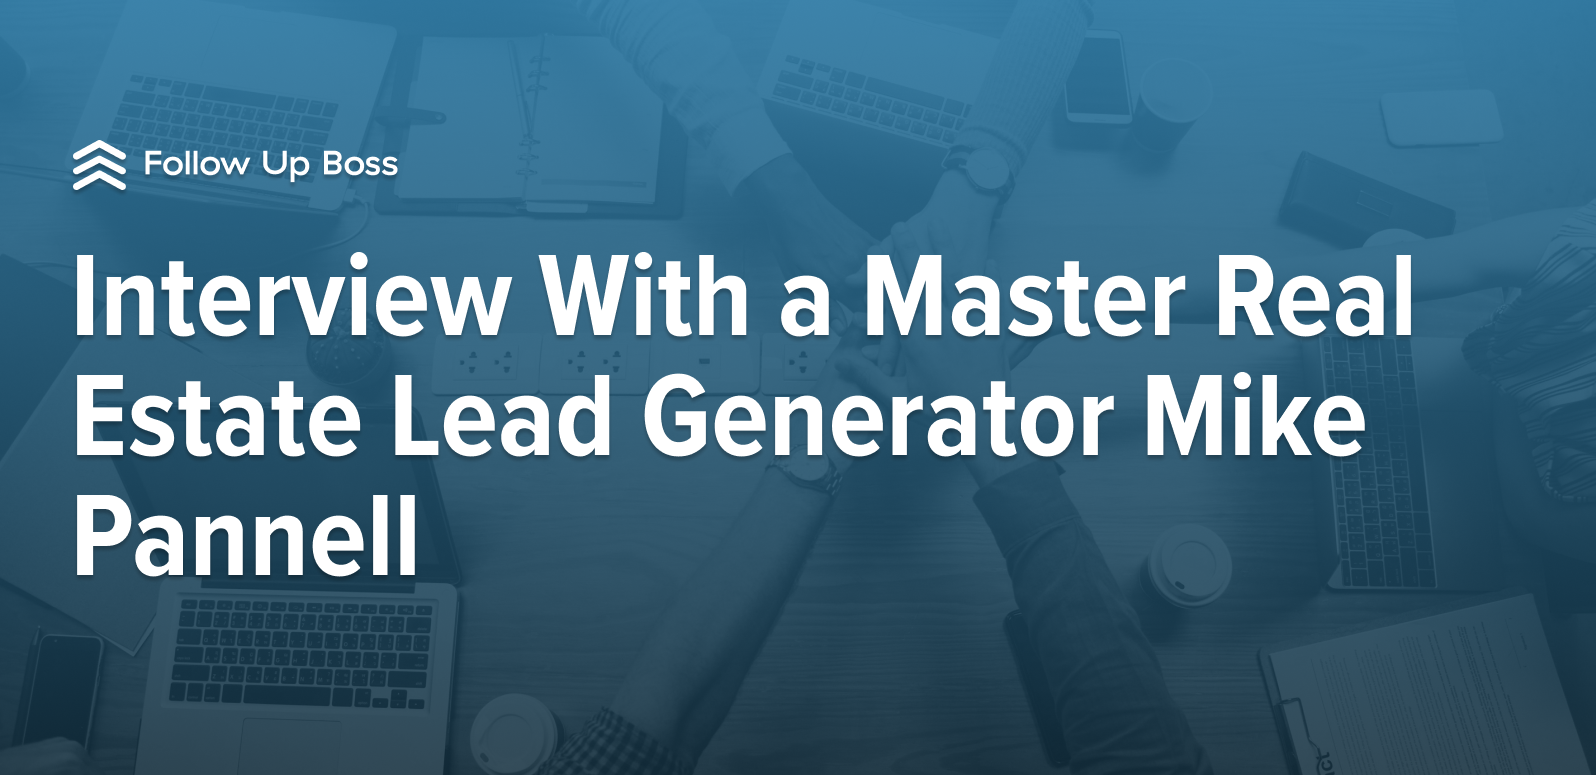 Interview With a Master Real Estate Lead Generator Mike Pannell